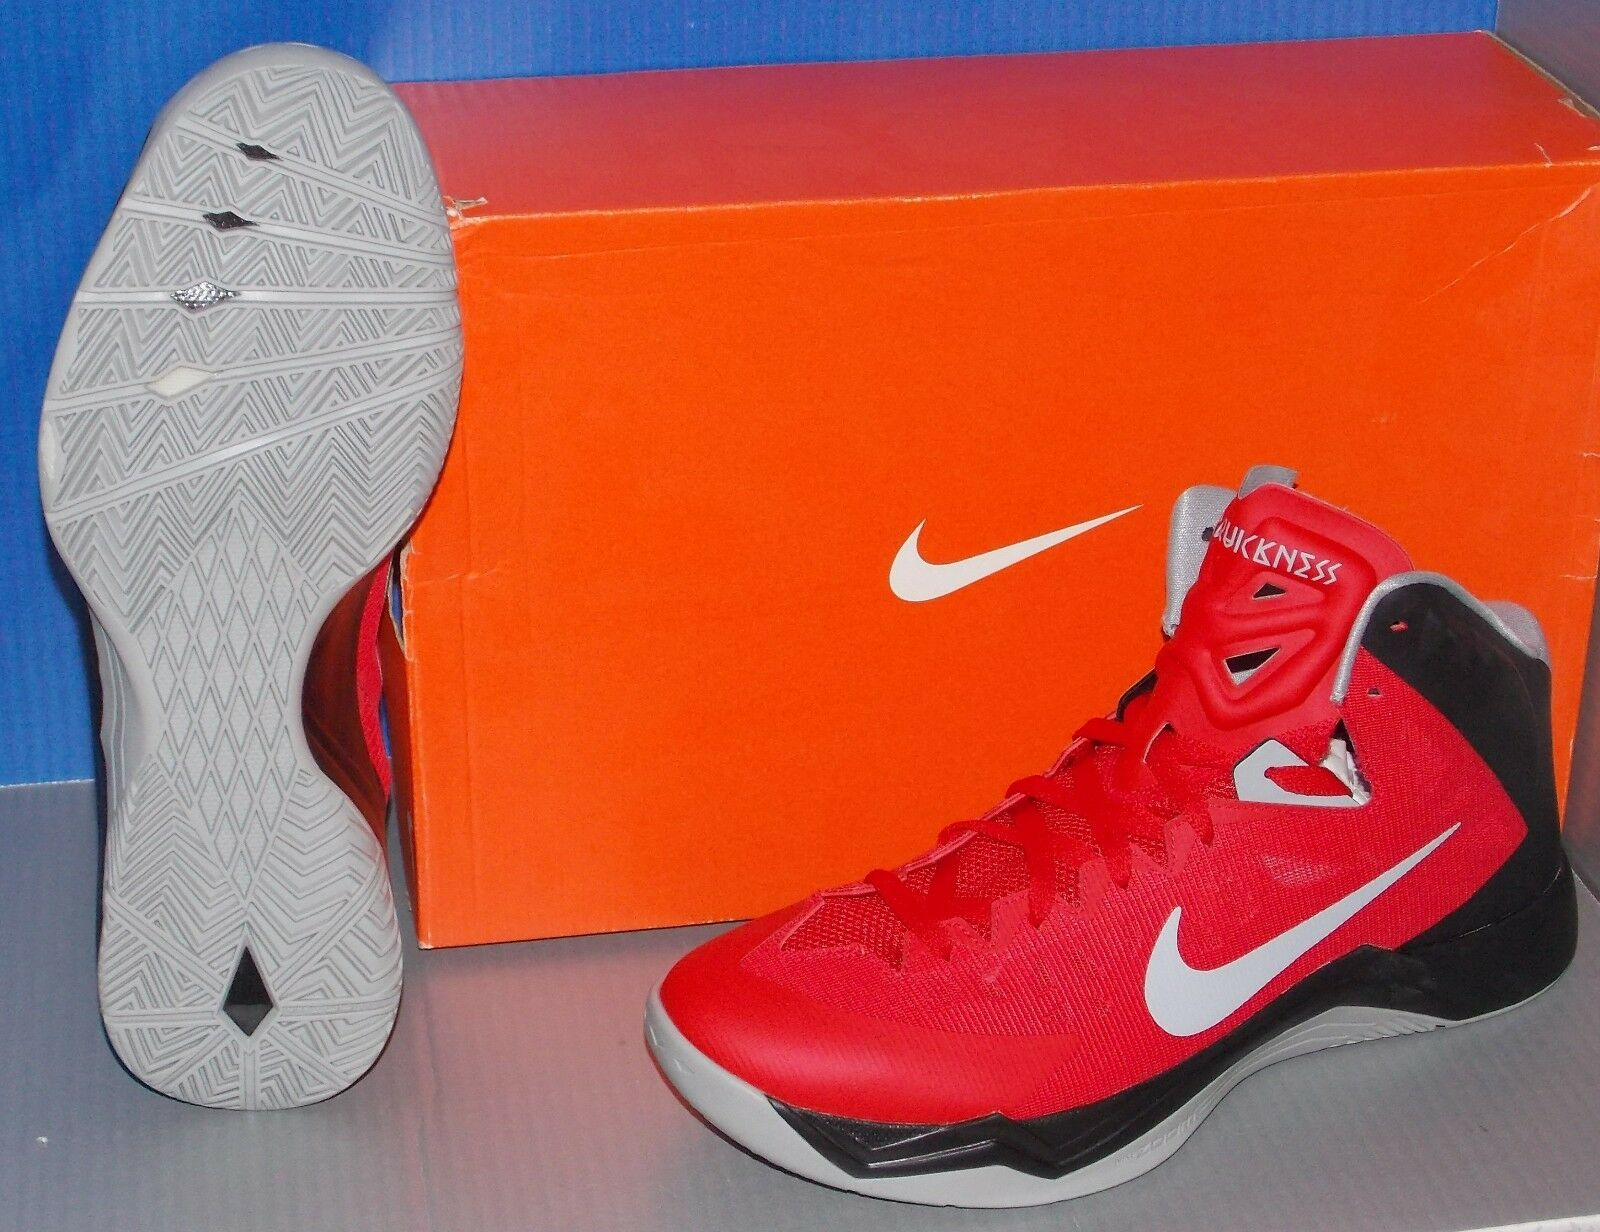 premium selection 51fdf 0a71e ... MENS NIKE ZOOM HYPERQUICKNESS in in in colors UNIVERSITY RED   GREY   BLACK  SIZE 10 ...